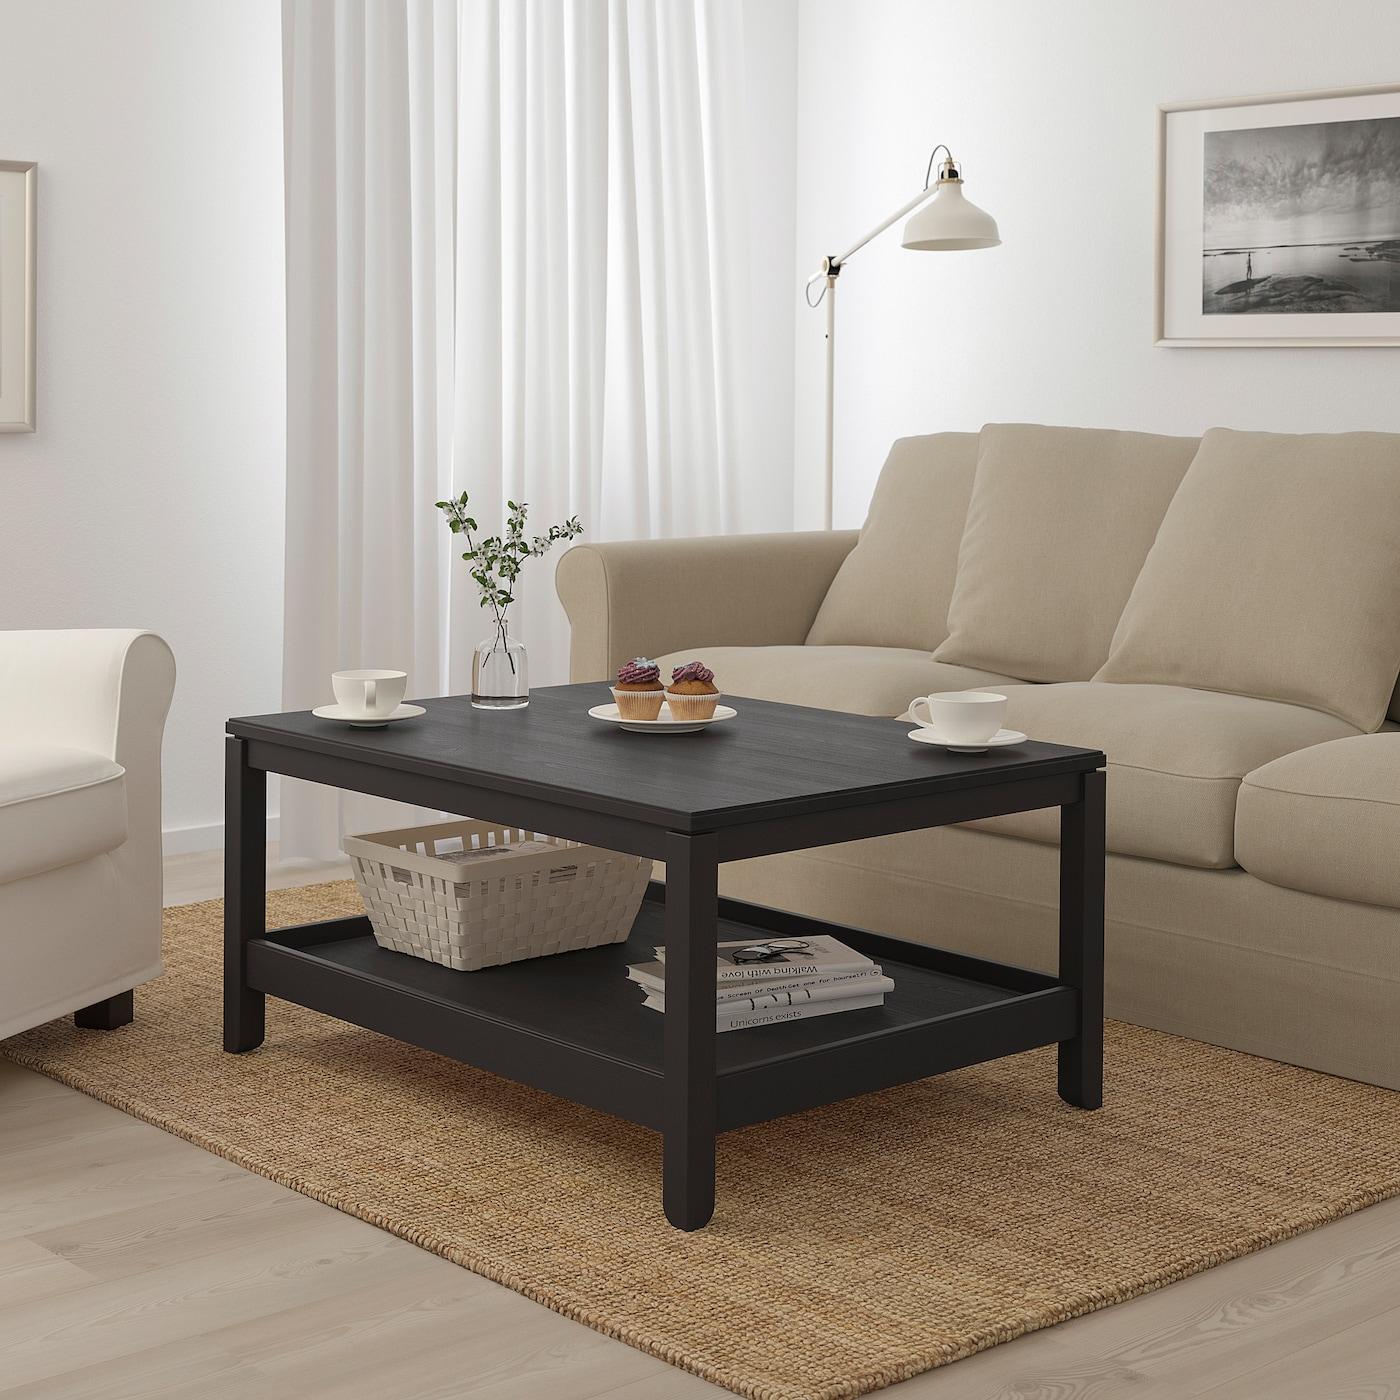 Picture of: Havsta Coffee Table Dark Brown Ikea